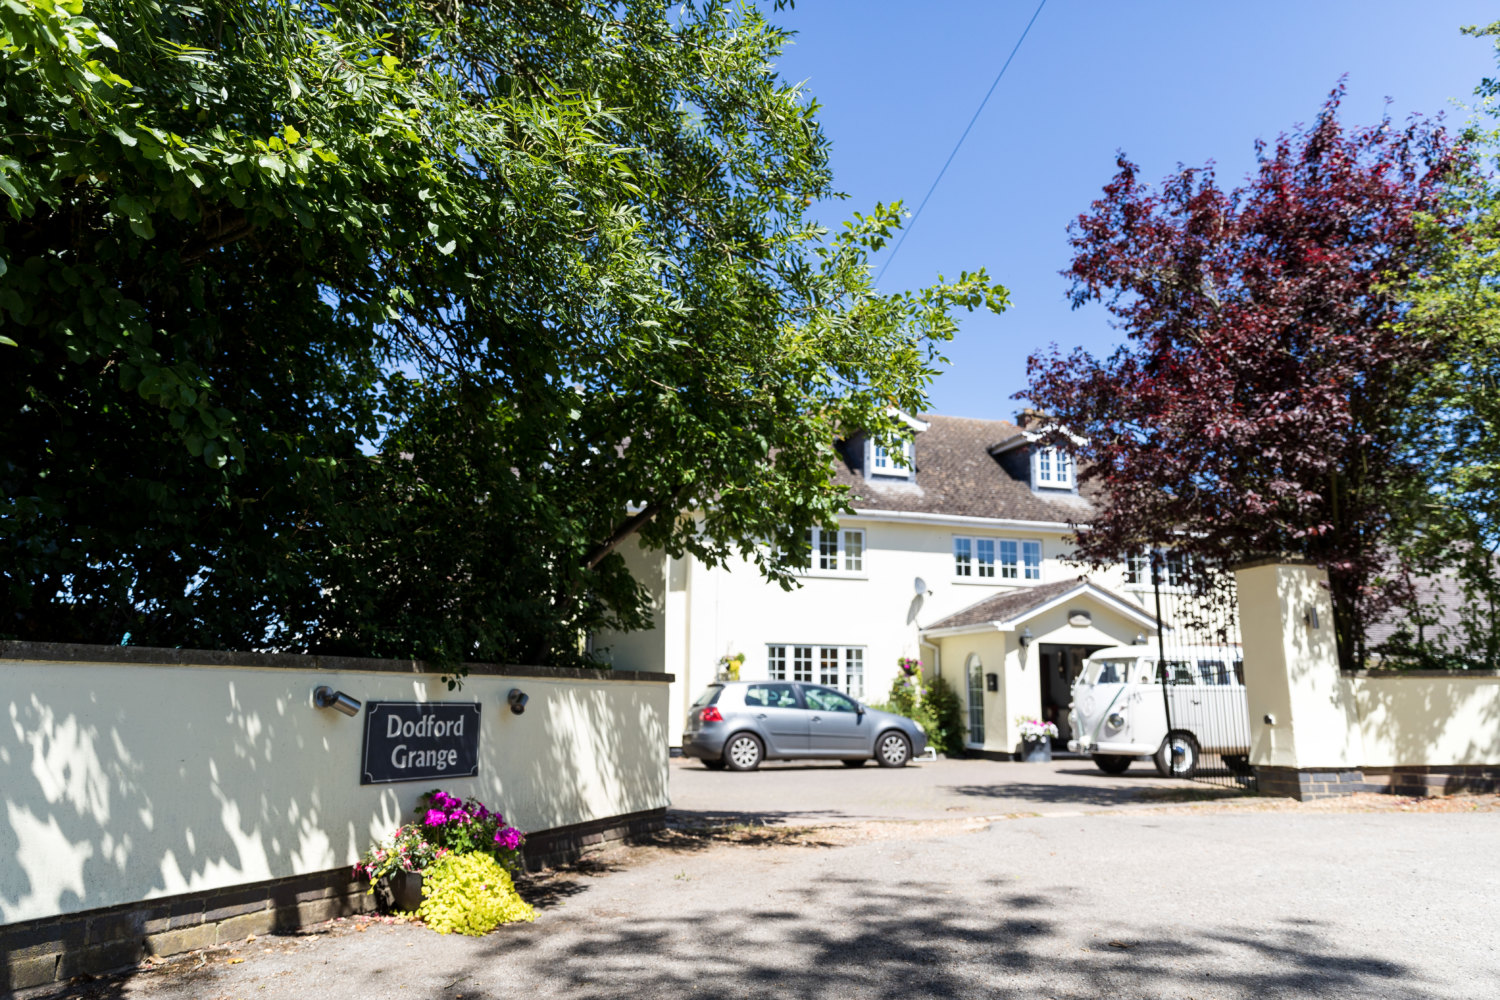 Dodford Grange bed and breakfast